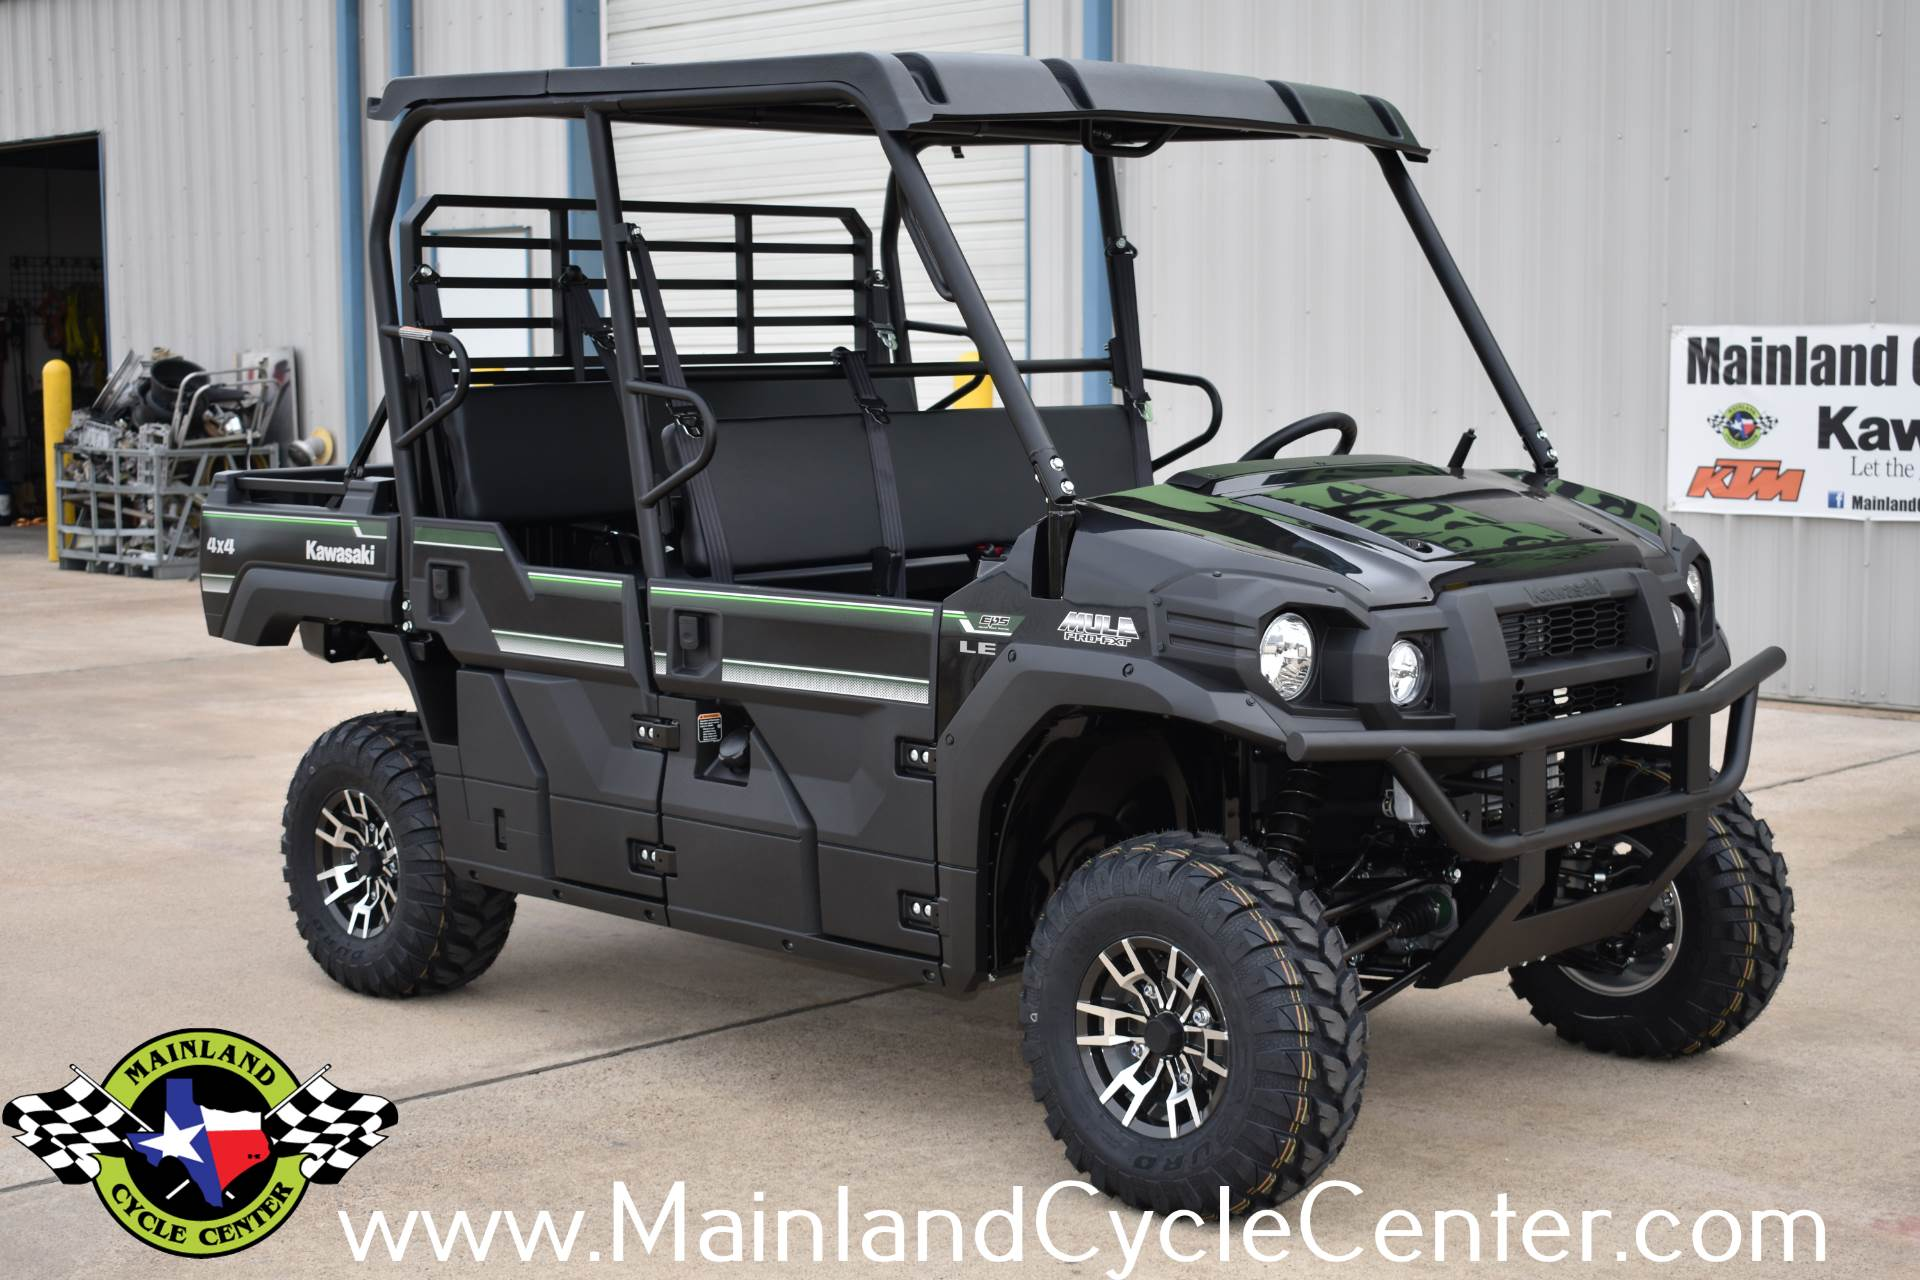 2019 Kawasaki Mule PRO-FXT EPS LE for sale 2116